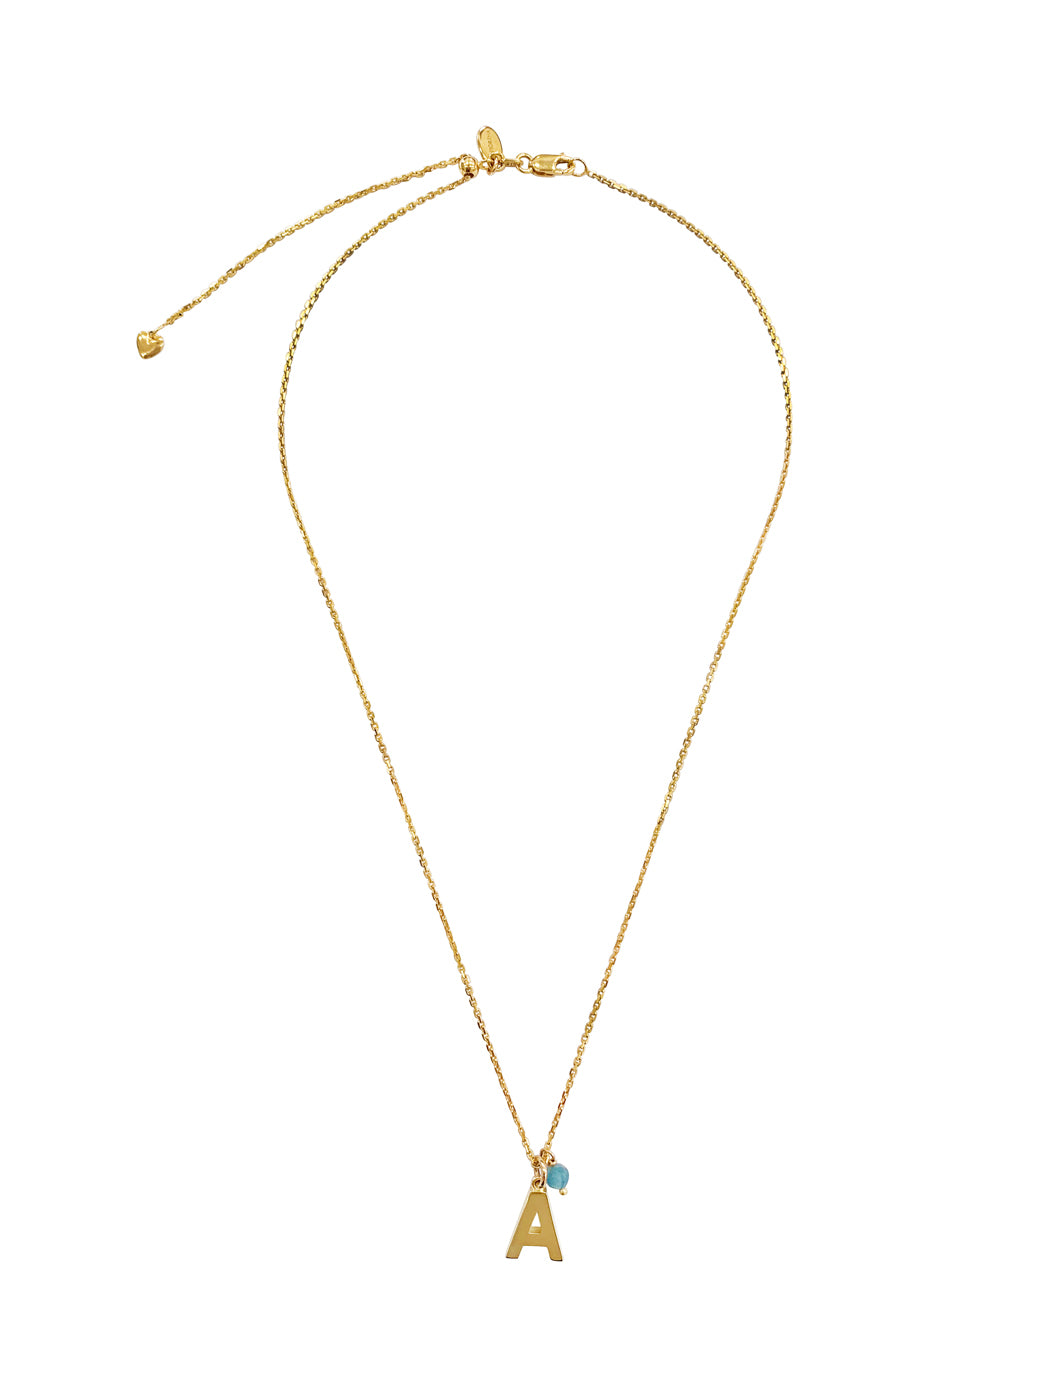 Fiorina Jewellery Gold Alphabet Street Necklace Aqua